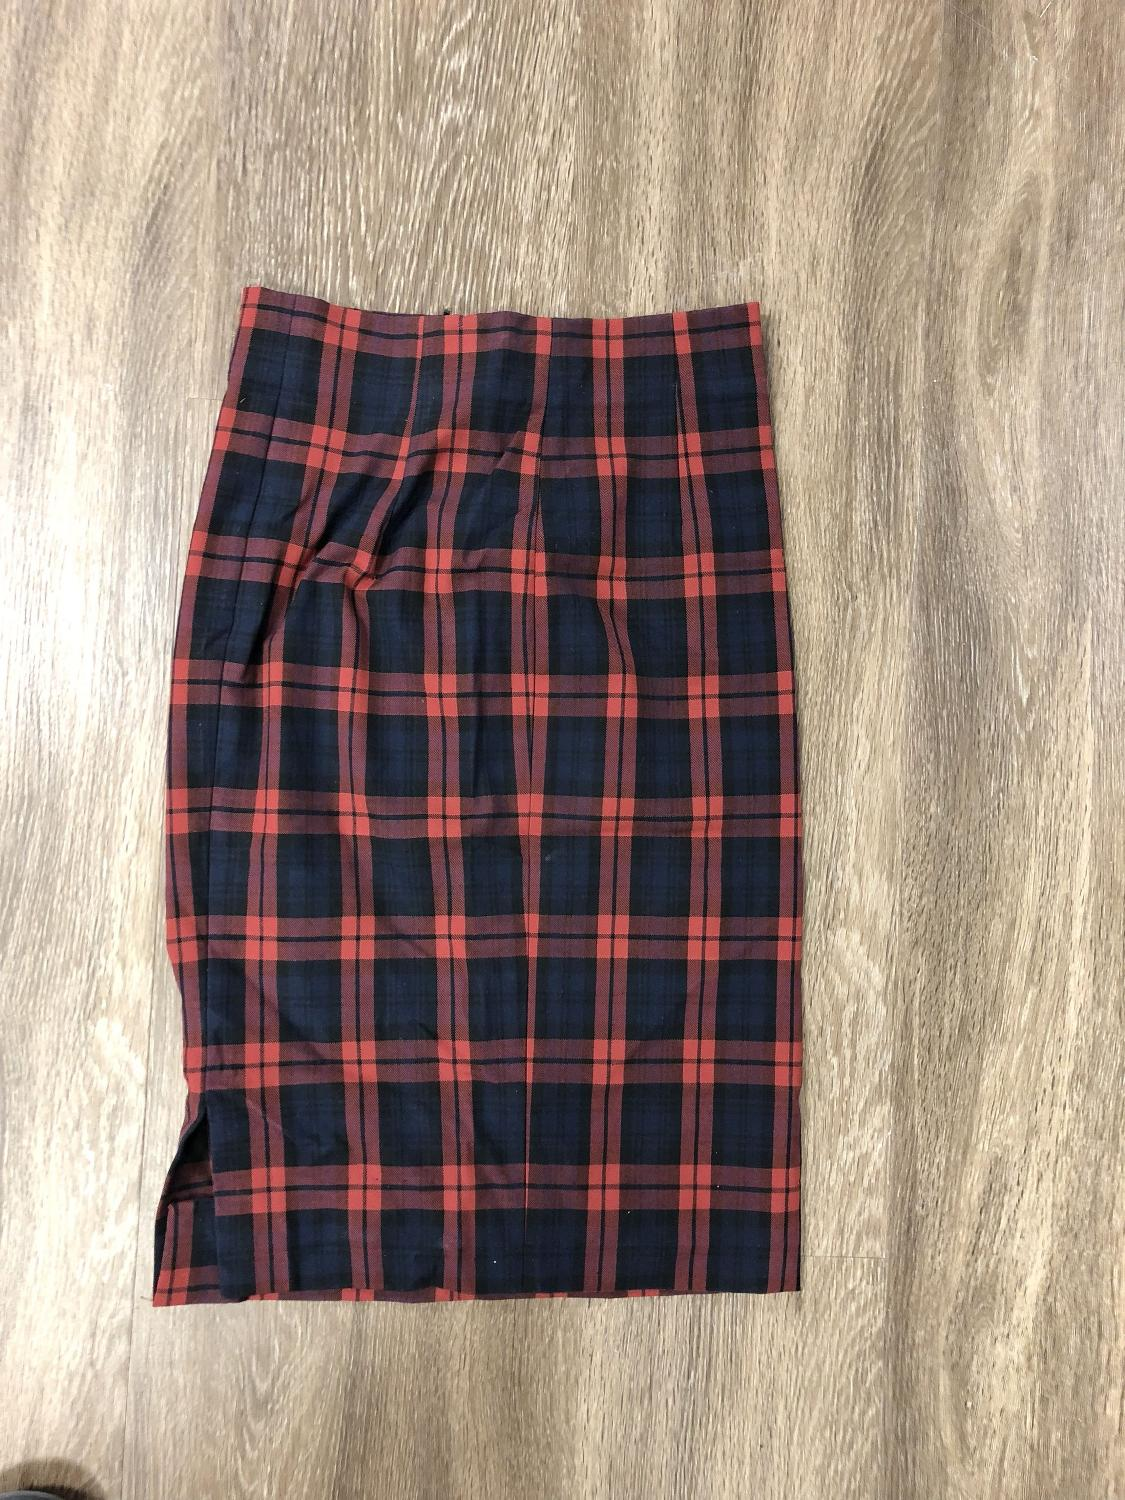 a38fffcd31f Best Zara Plaid Skirt Size S for sale in Dollard-Des Ormeaux